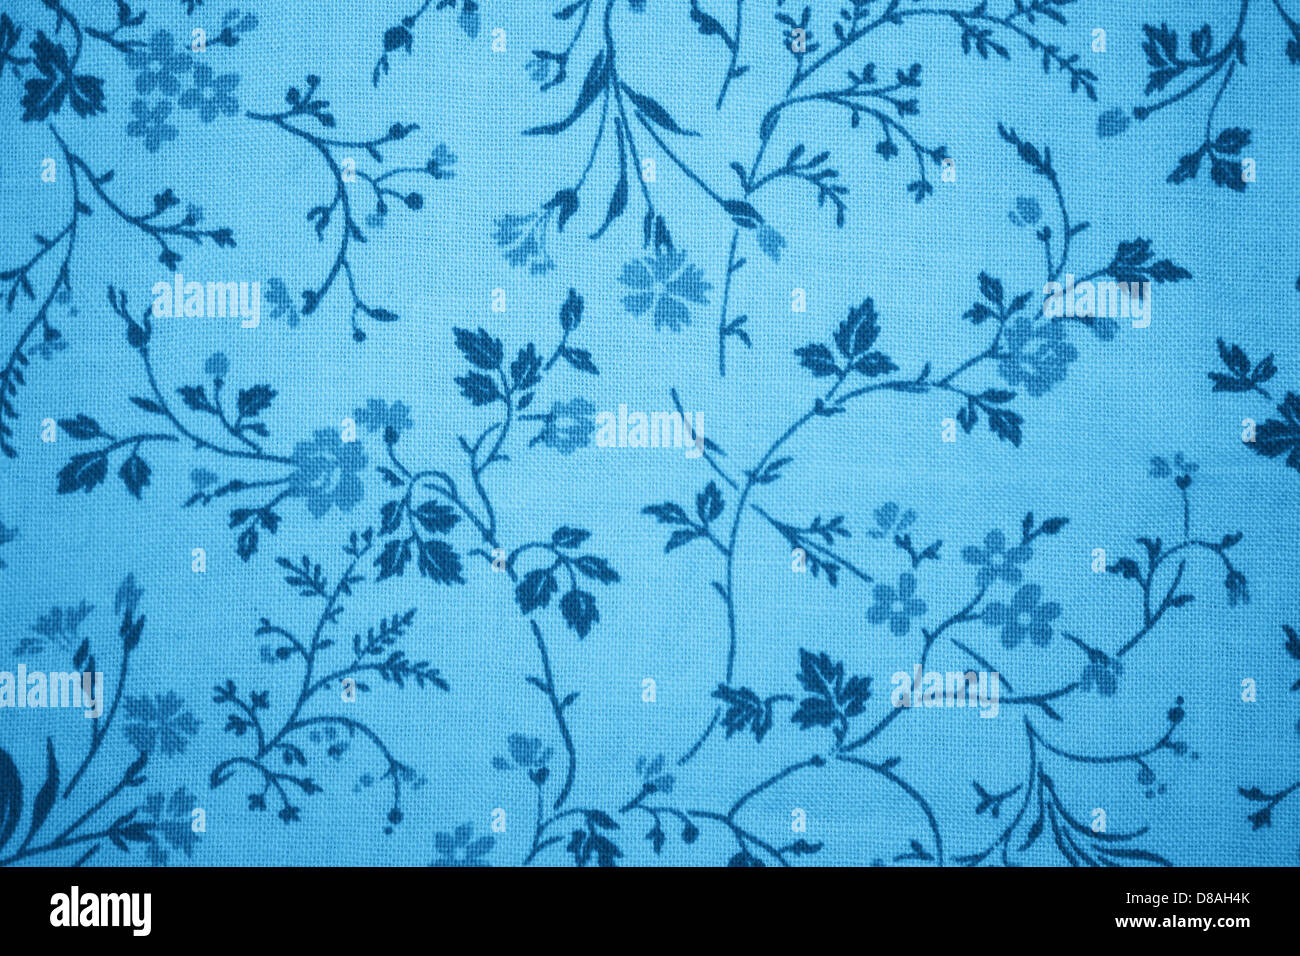 sky blue floral print fabric texture Stock Photo, Royalty Free ... for Fabric Texture Design Blue  117dqh